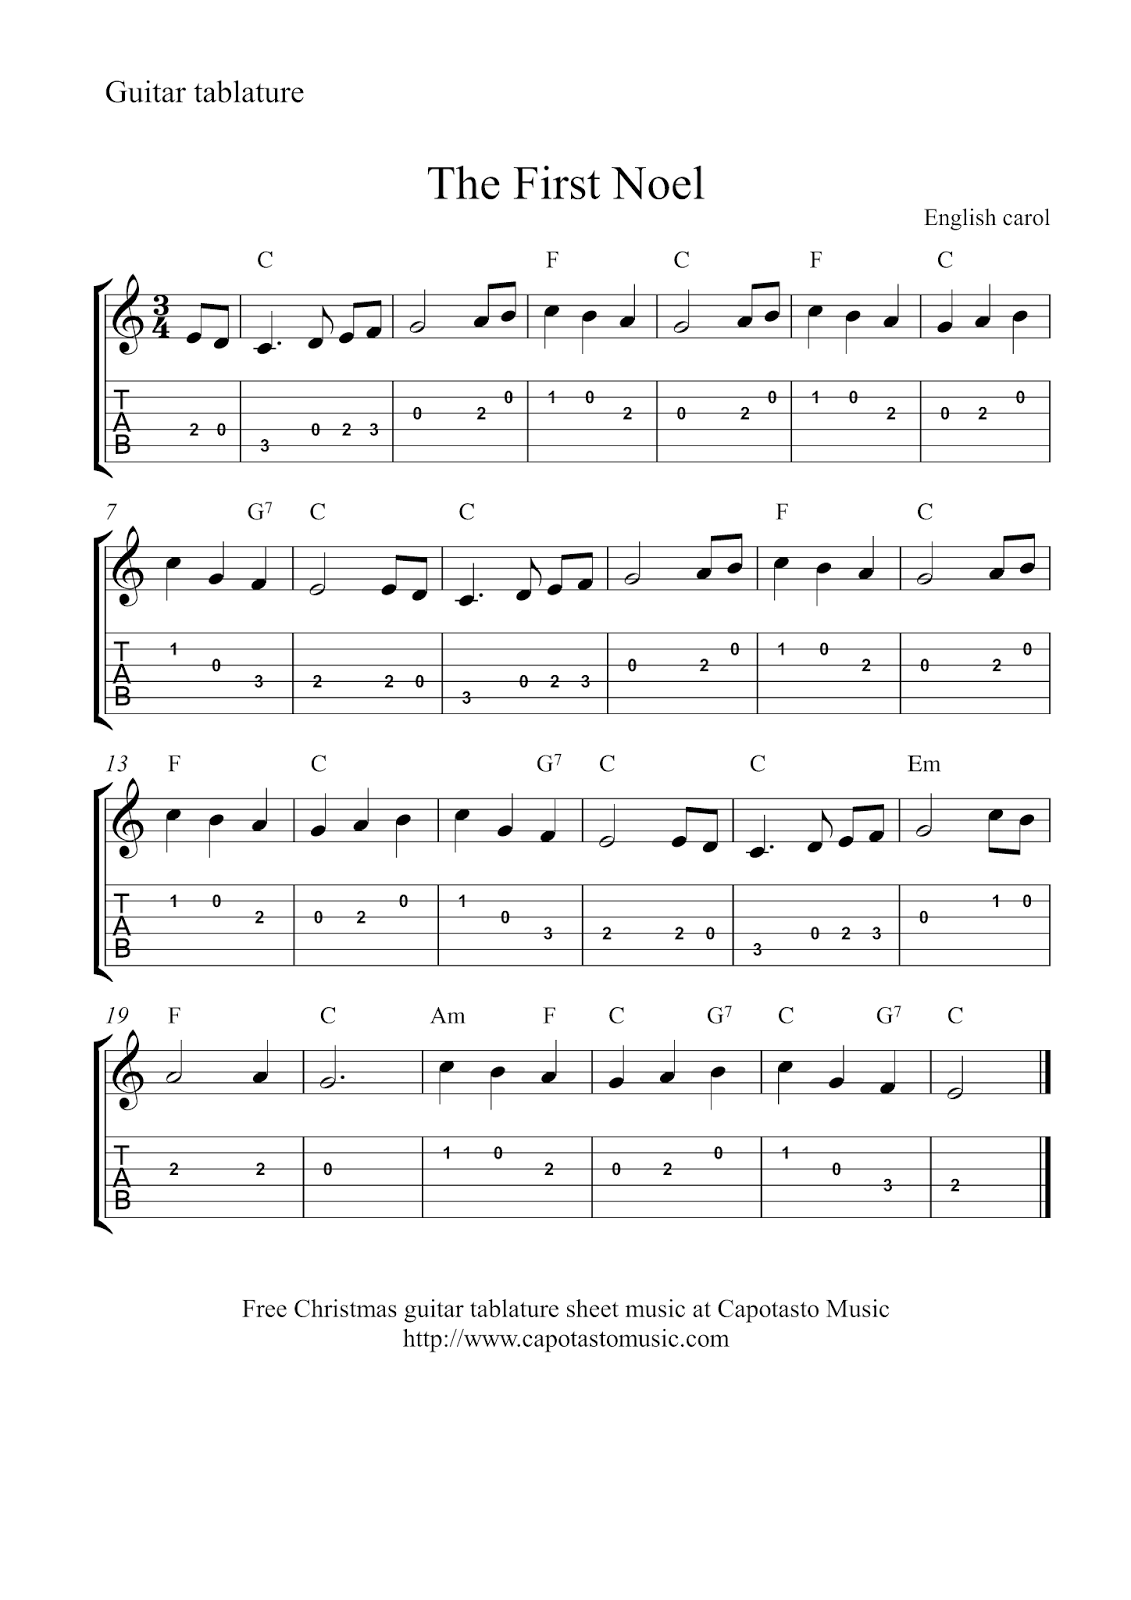 free christmas guitar tablature sheet music the first noel. Black Bedroom Furniture Sets. Home Design Ideas